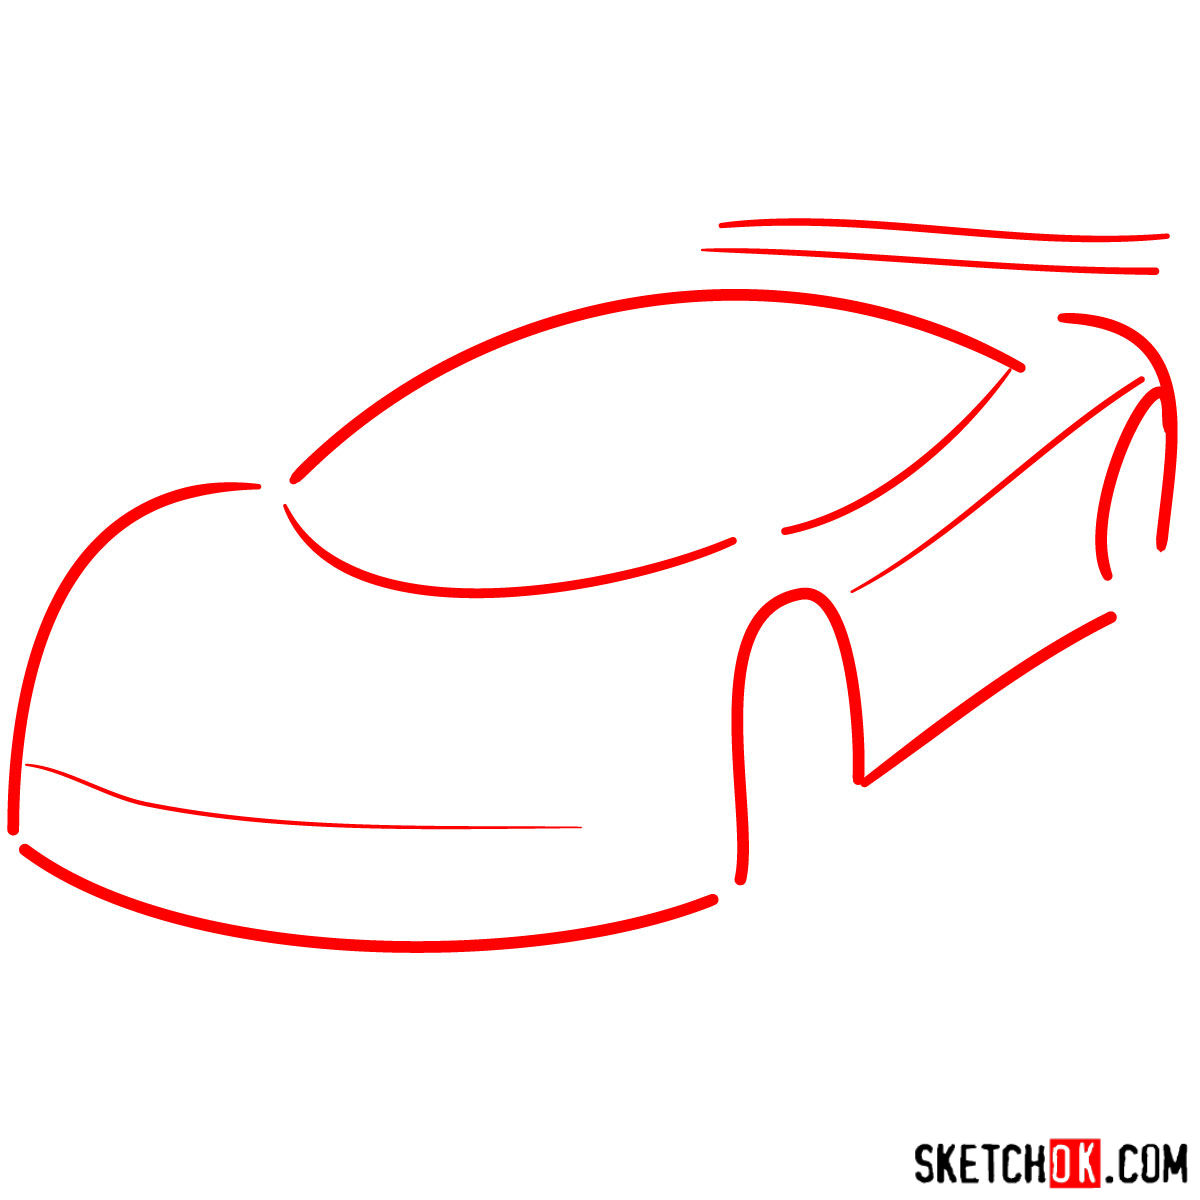 How to draw McLaren F1 - Step by step drawing tutorials